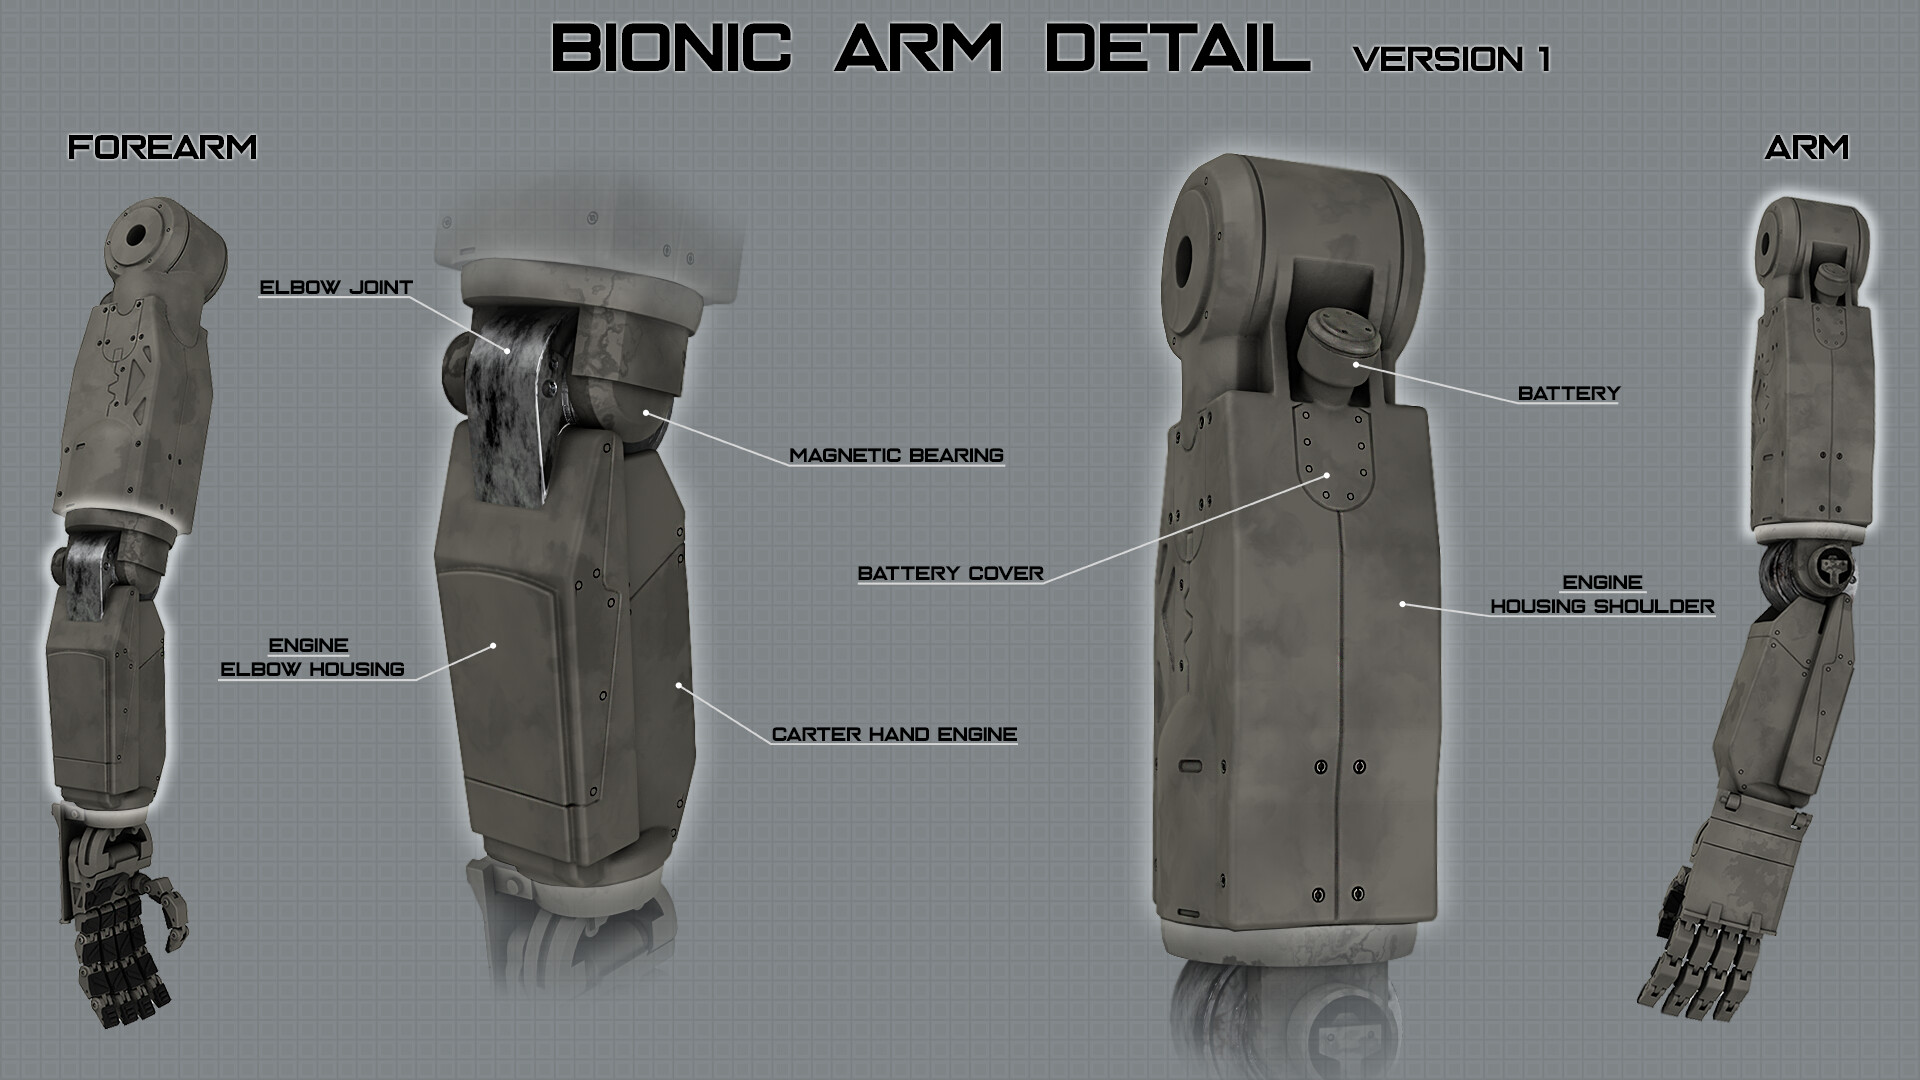 AMP (film AVATAR de James Cameron's) - Page 3 Bionic10